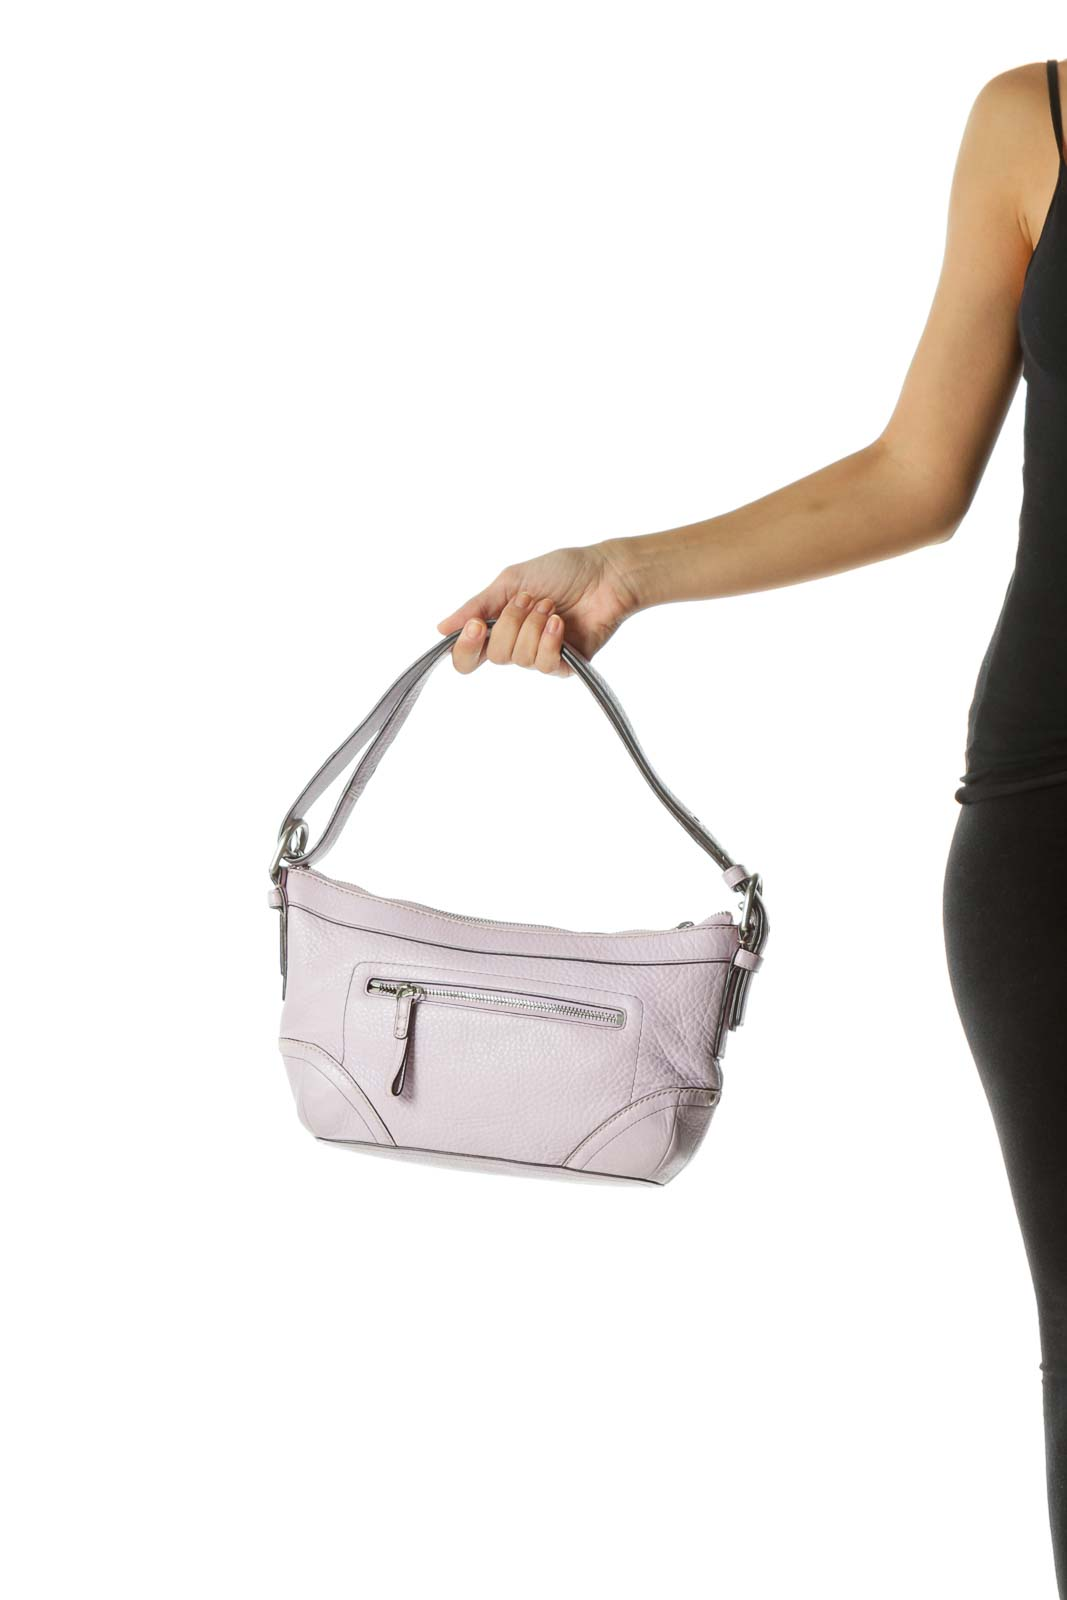 Purple Pocketed Shoulder Bag